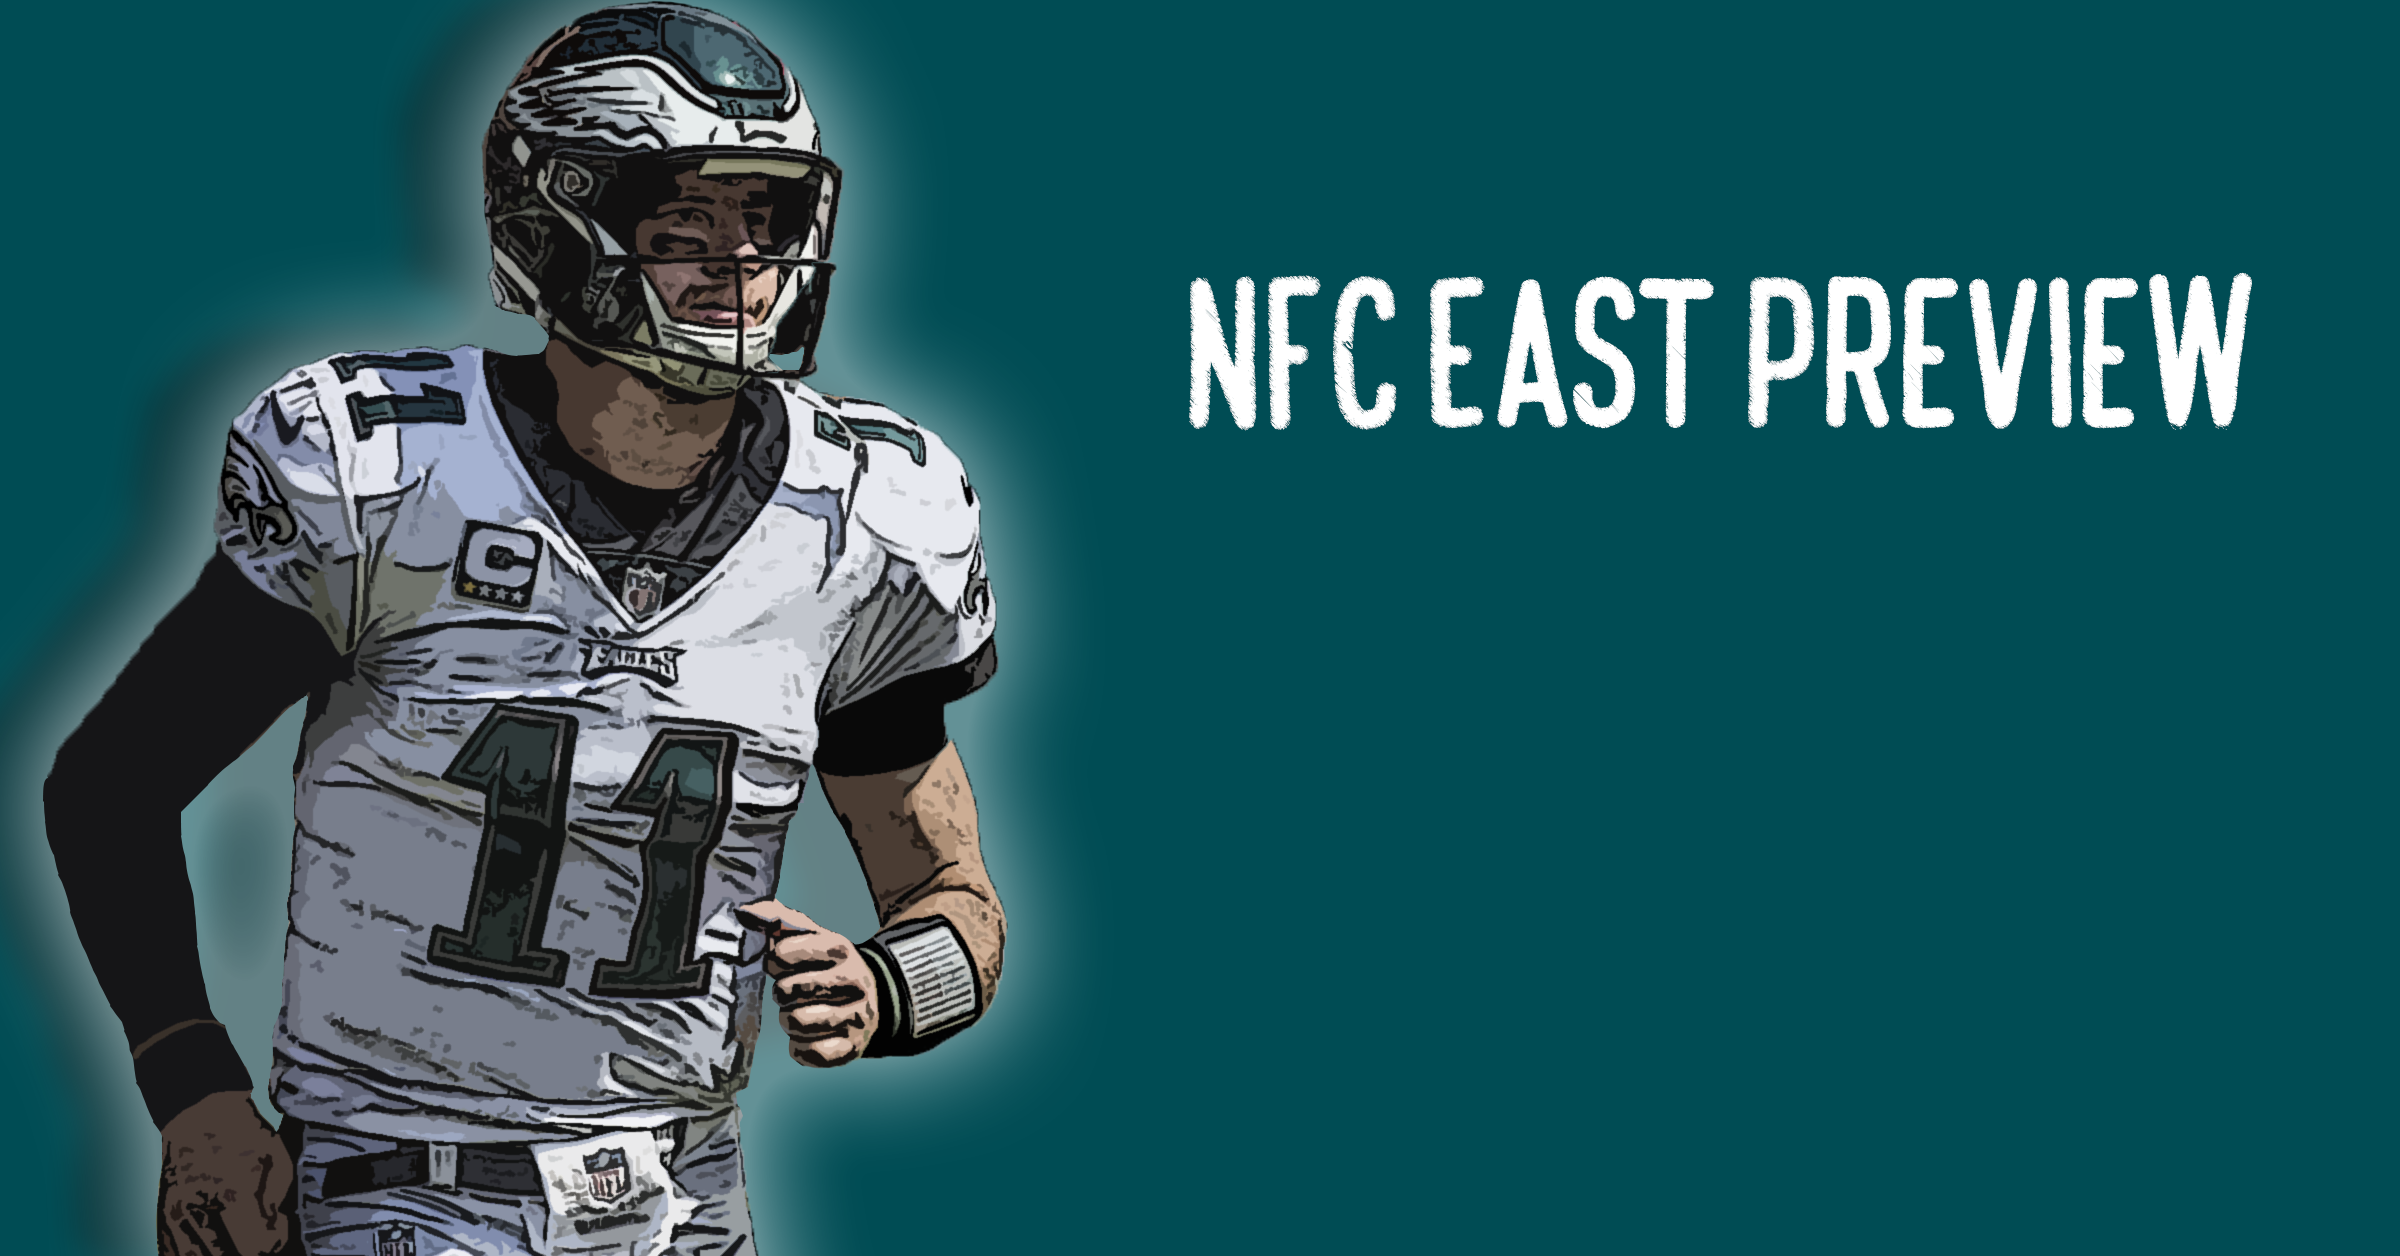 newest 25f11 3a1d9 NFL Preview 2018: The NFC East Is As Unpredictable As Ever